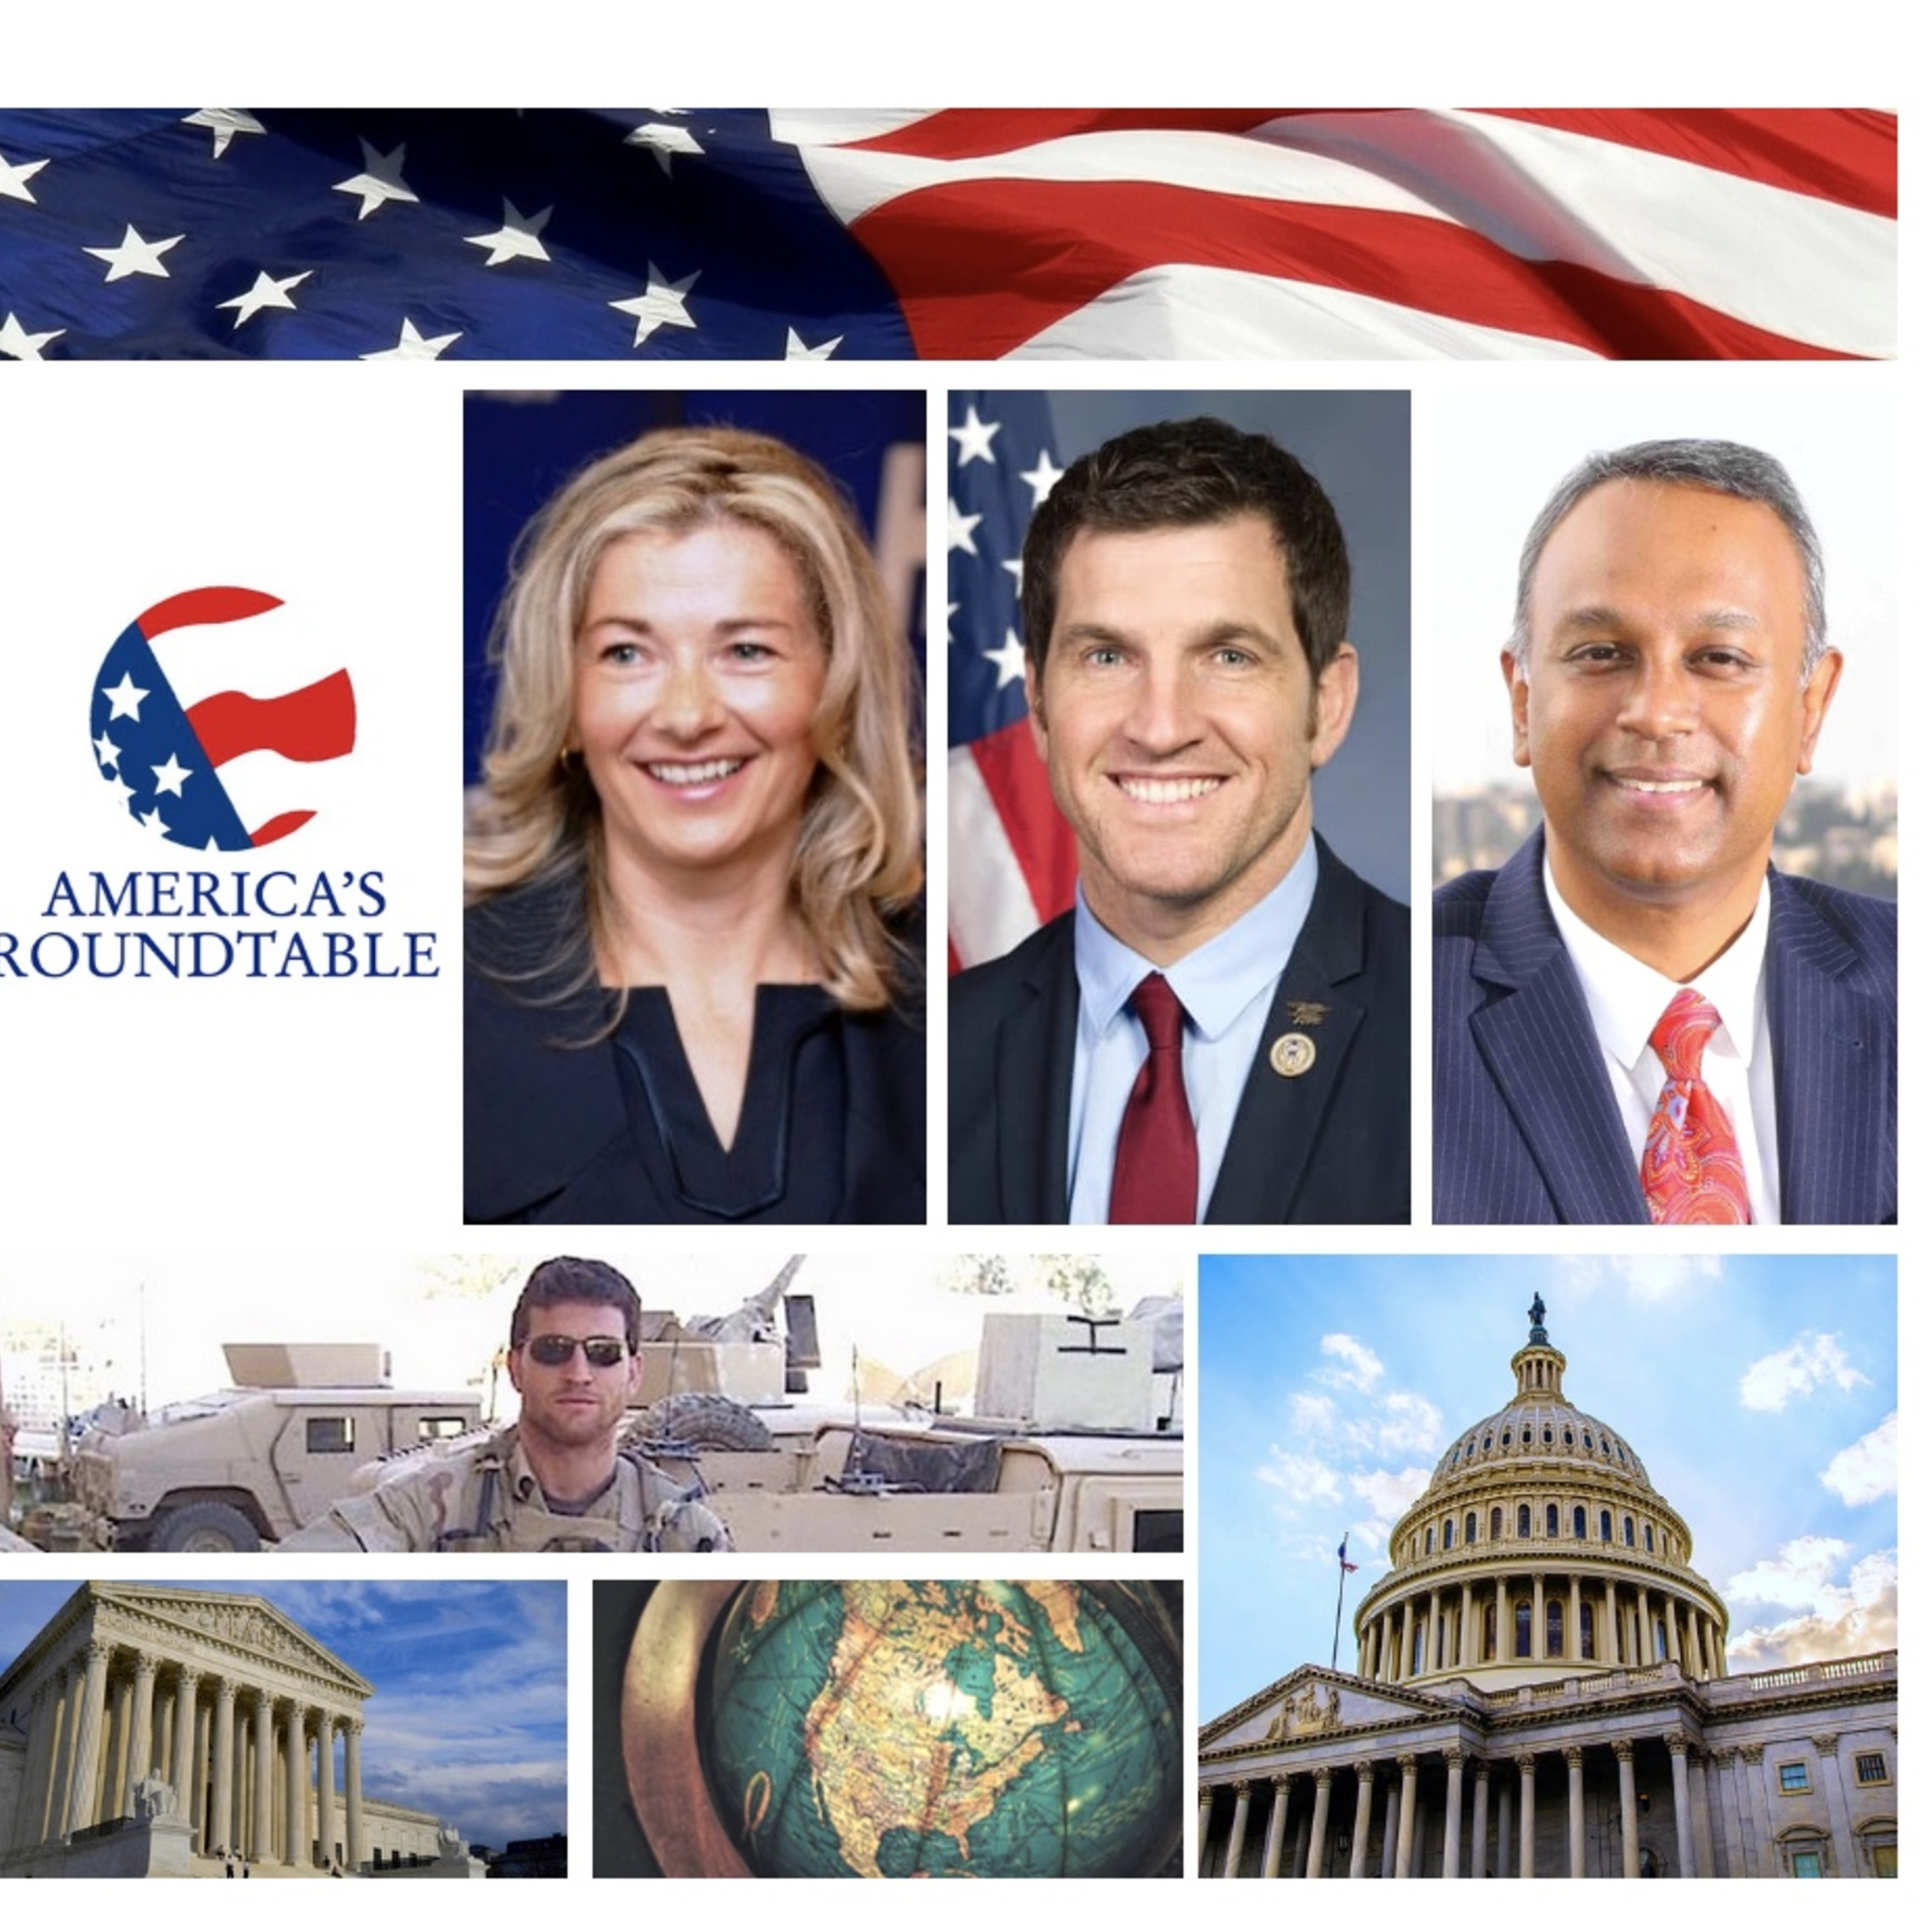 Fmr. Congressman Scott Taylor   The 20th Anniversary of September 11   Chaotic Withdrawal from Afghanistan   IAEA's Alarming Report on Iran   The First Year Anniversary of The Abraham Accords